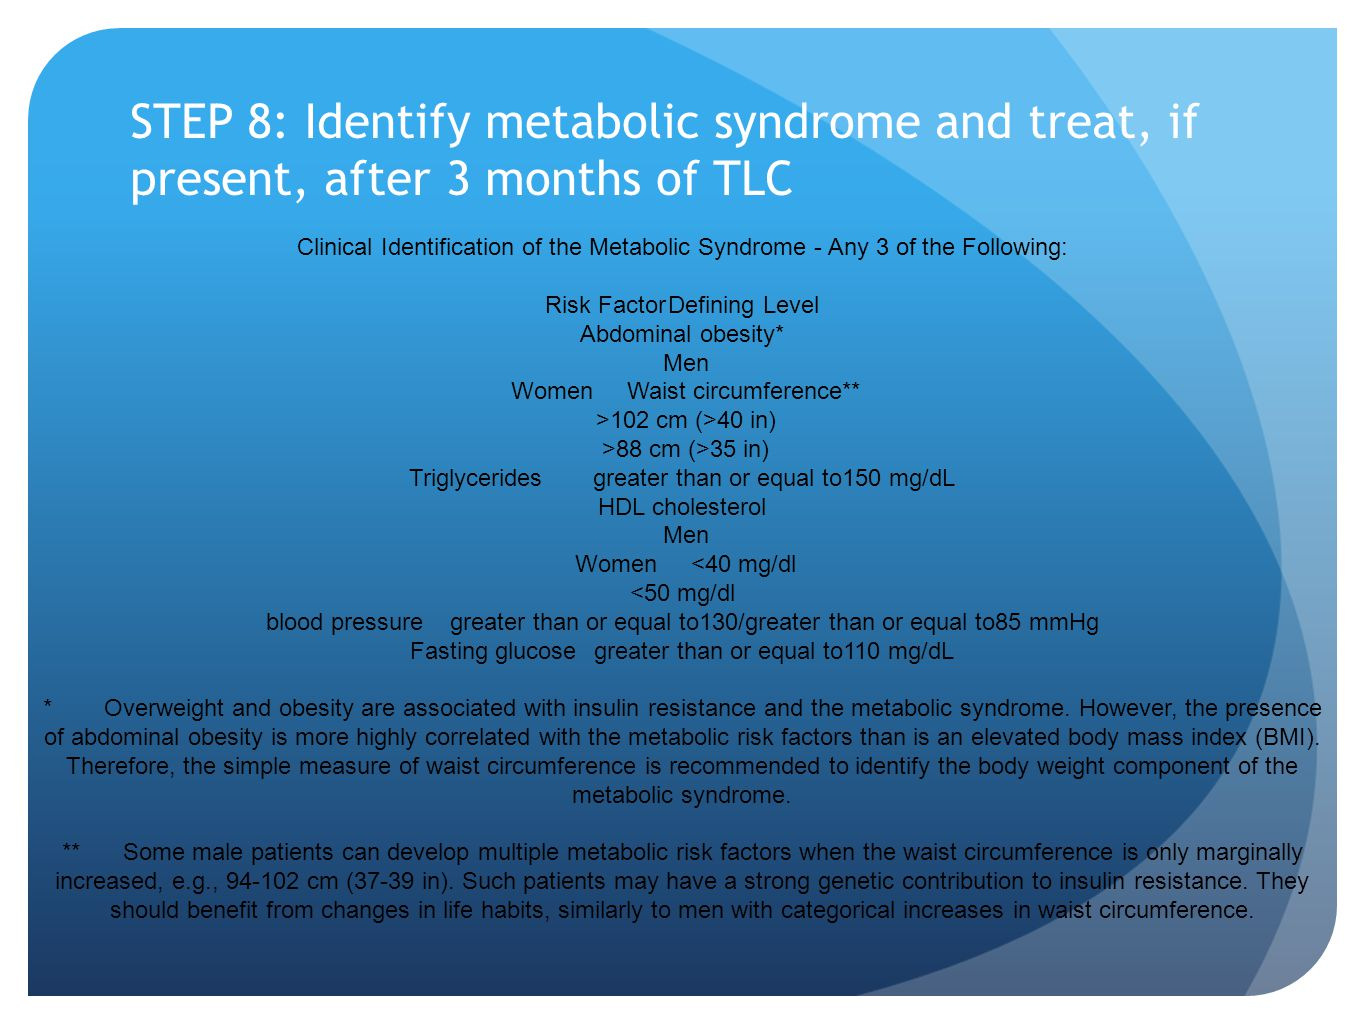 STEP 8: Identify metabolic syndrome and treat, if present, after 3 months of TLC